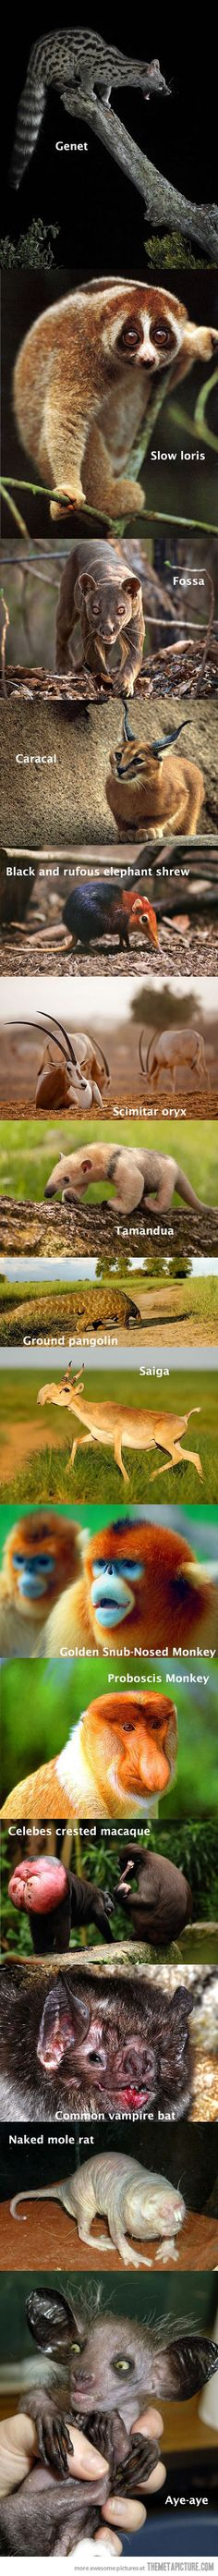 Animals that you rarely get to see…